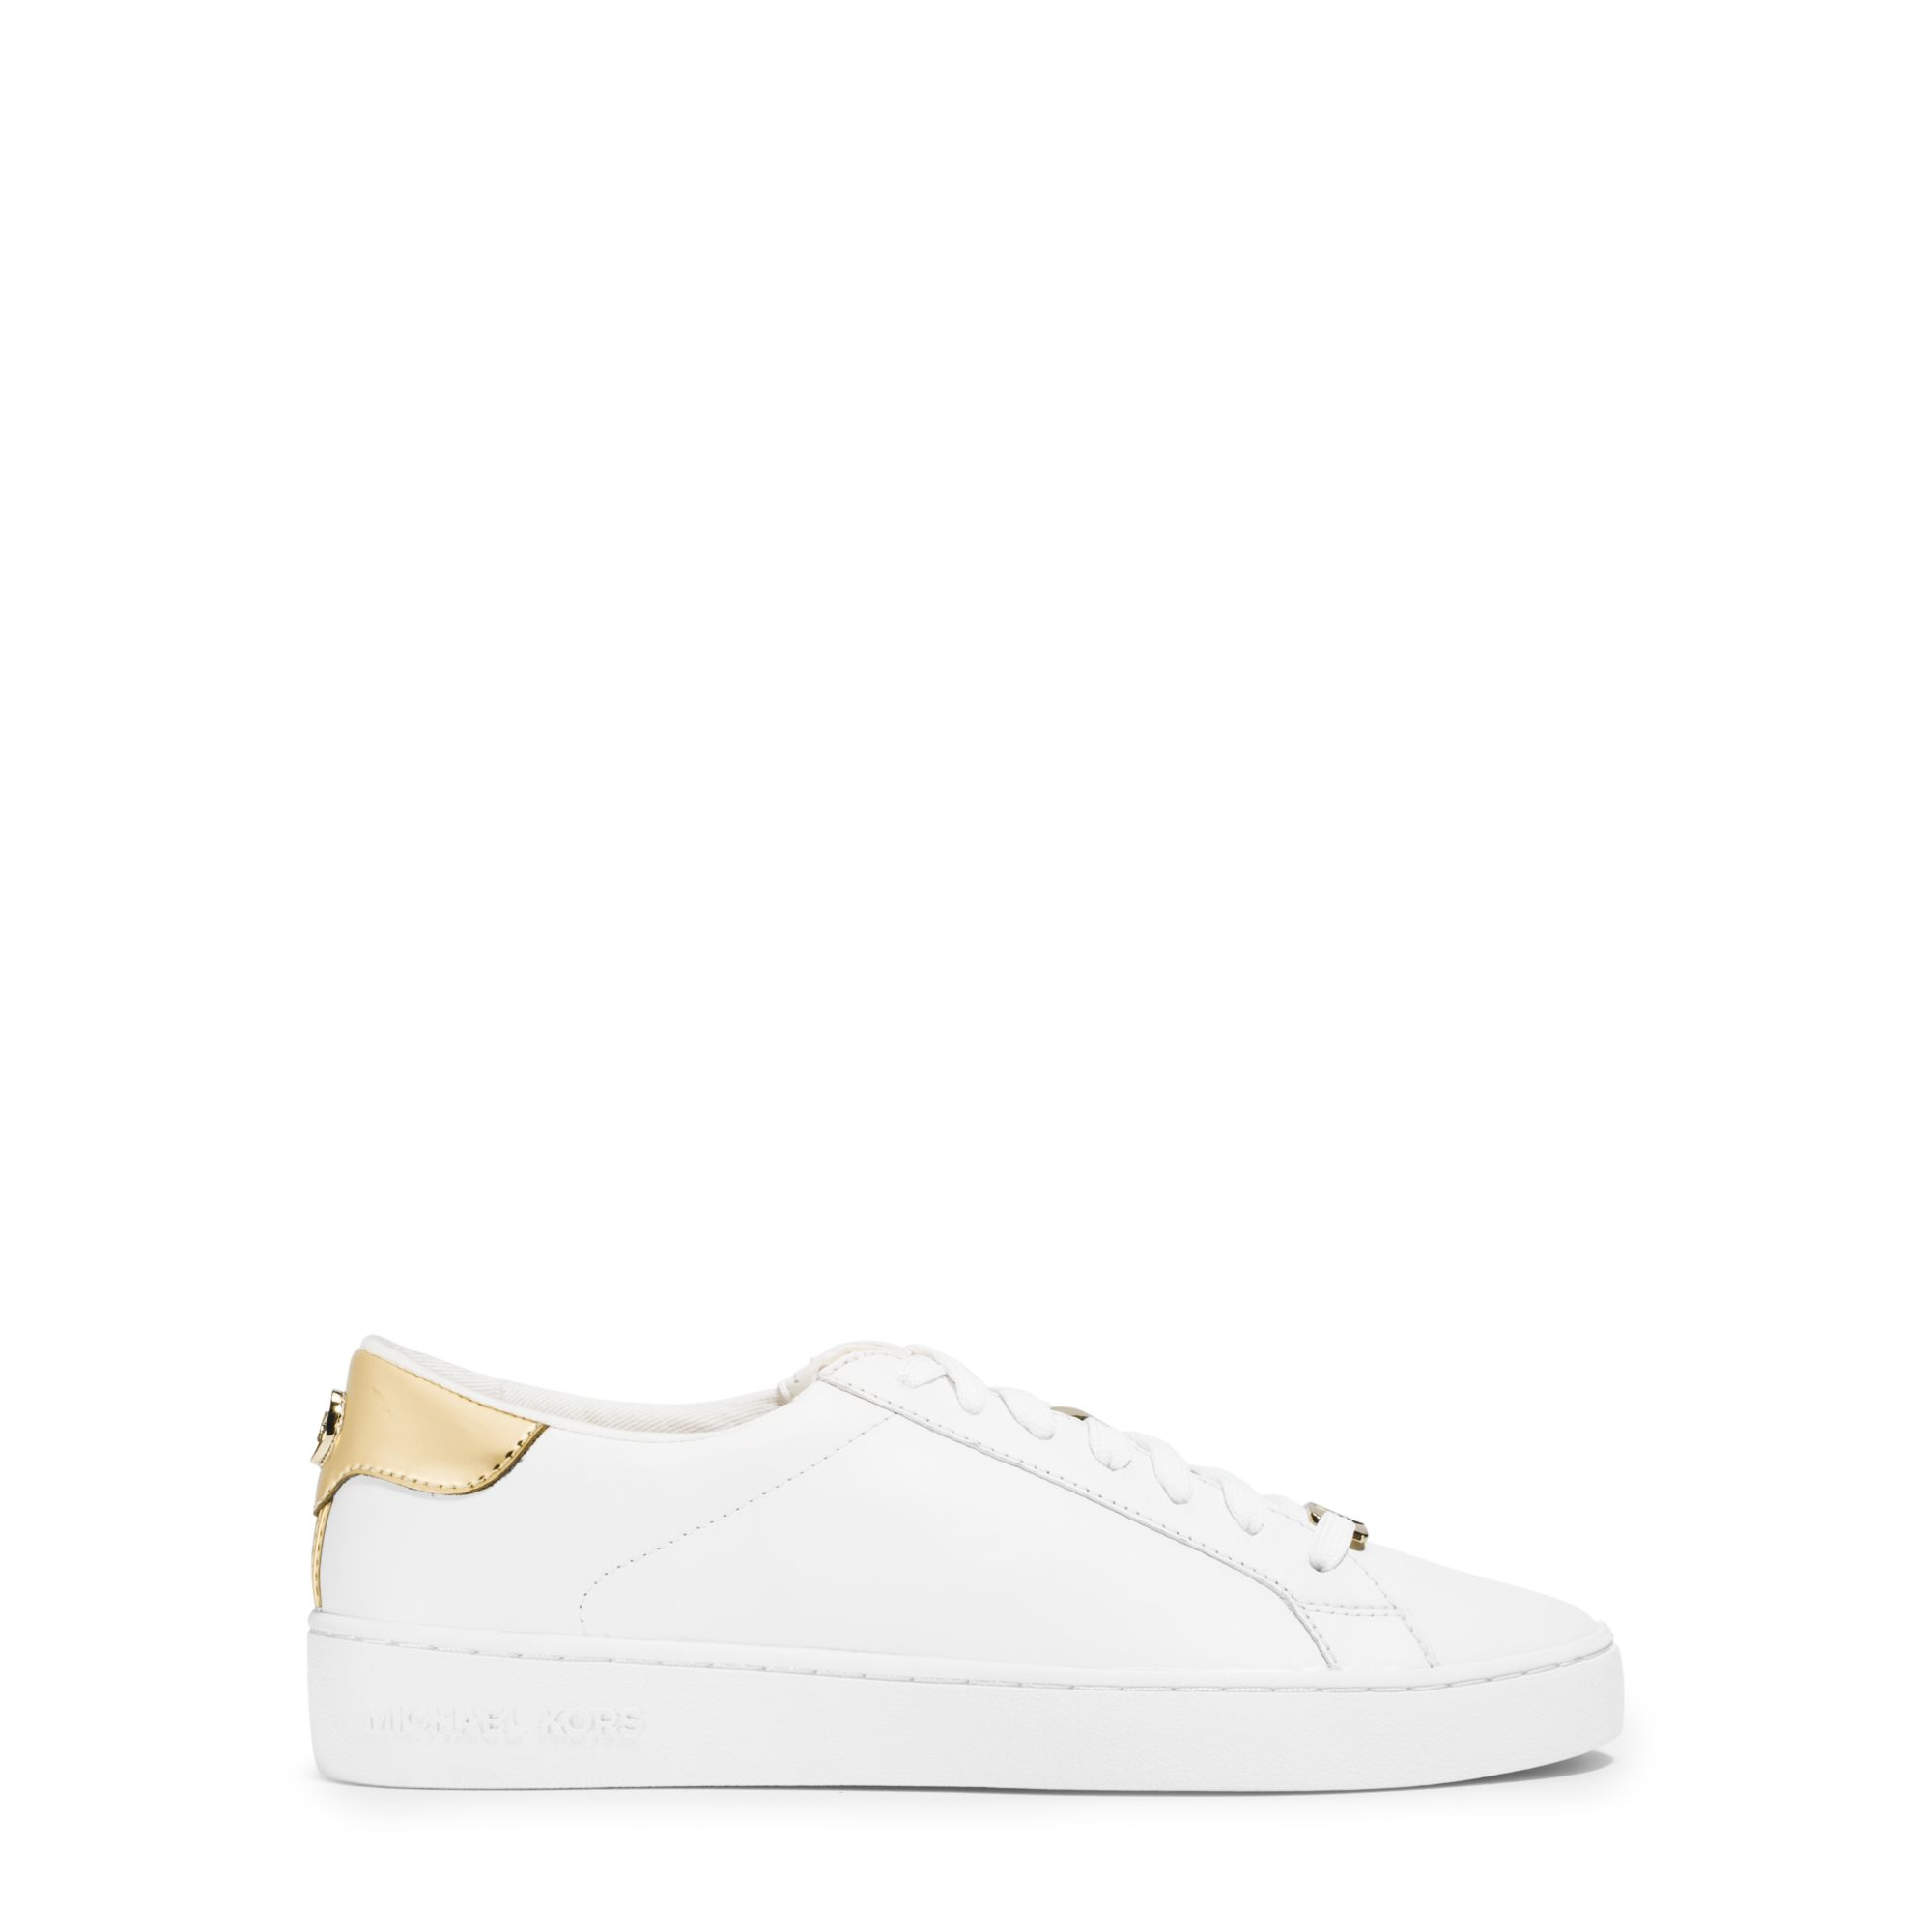 michael kors irving leather sneaker in white lyst. Black Bedroom Furniture Sets. Home Design Ideas